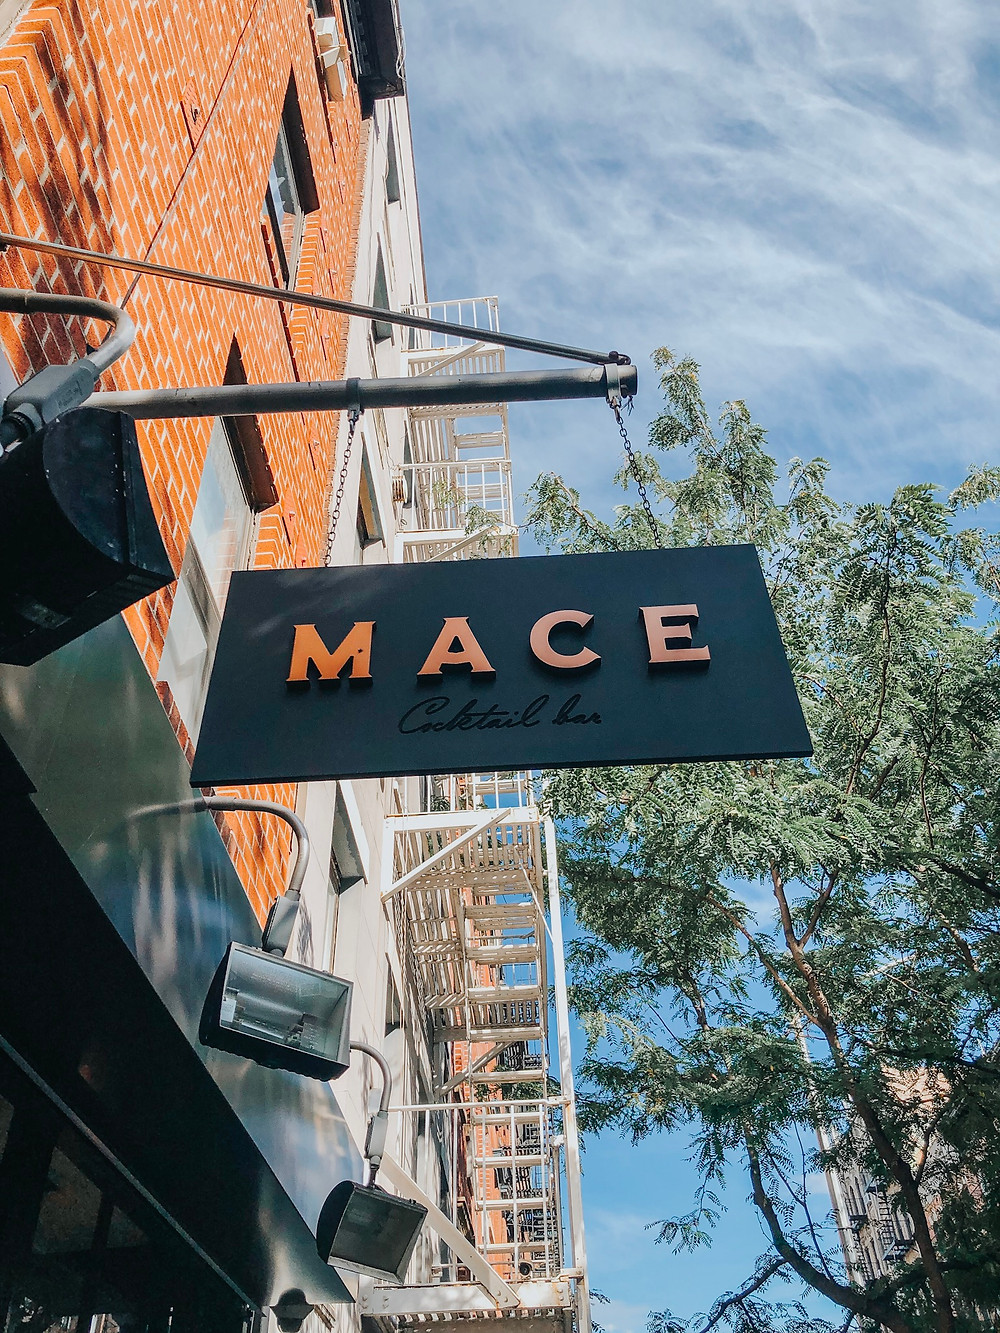 Mace Cocktail Bar New York City - 24 Hours in New York City - Your Unique One-Day Itinerary